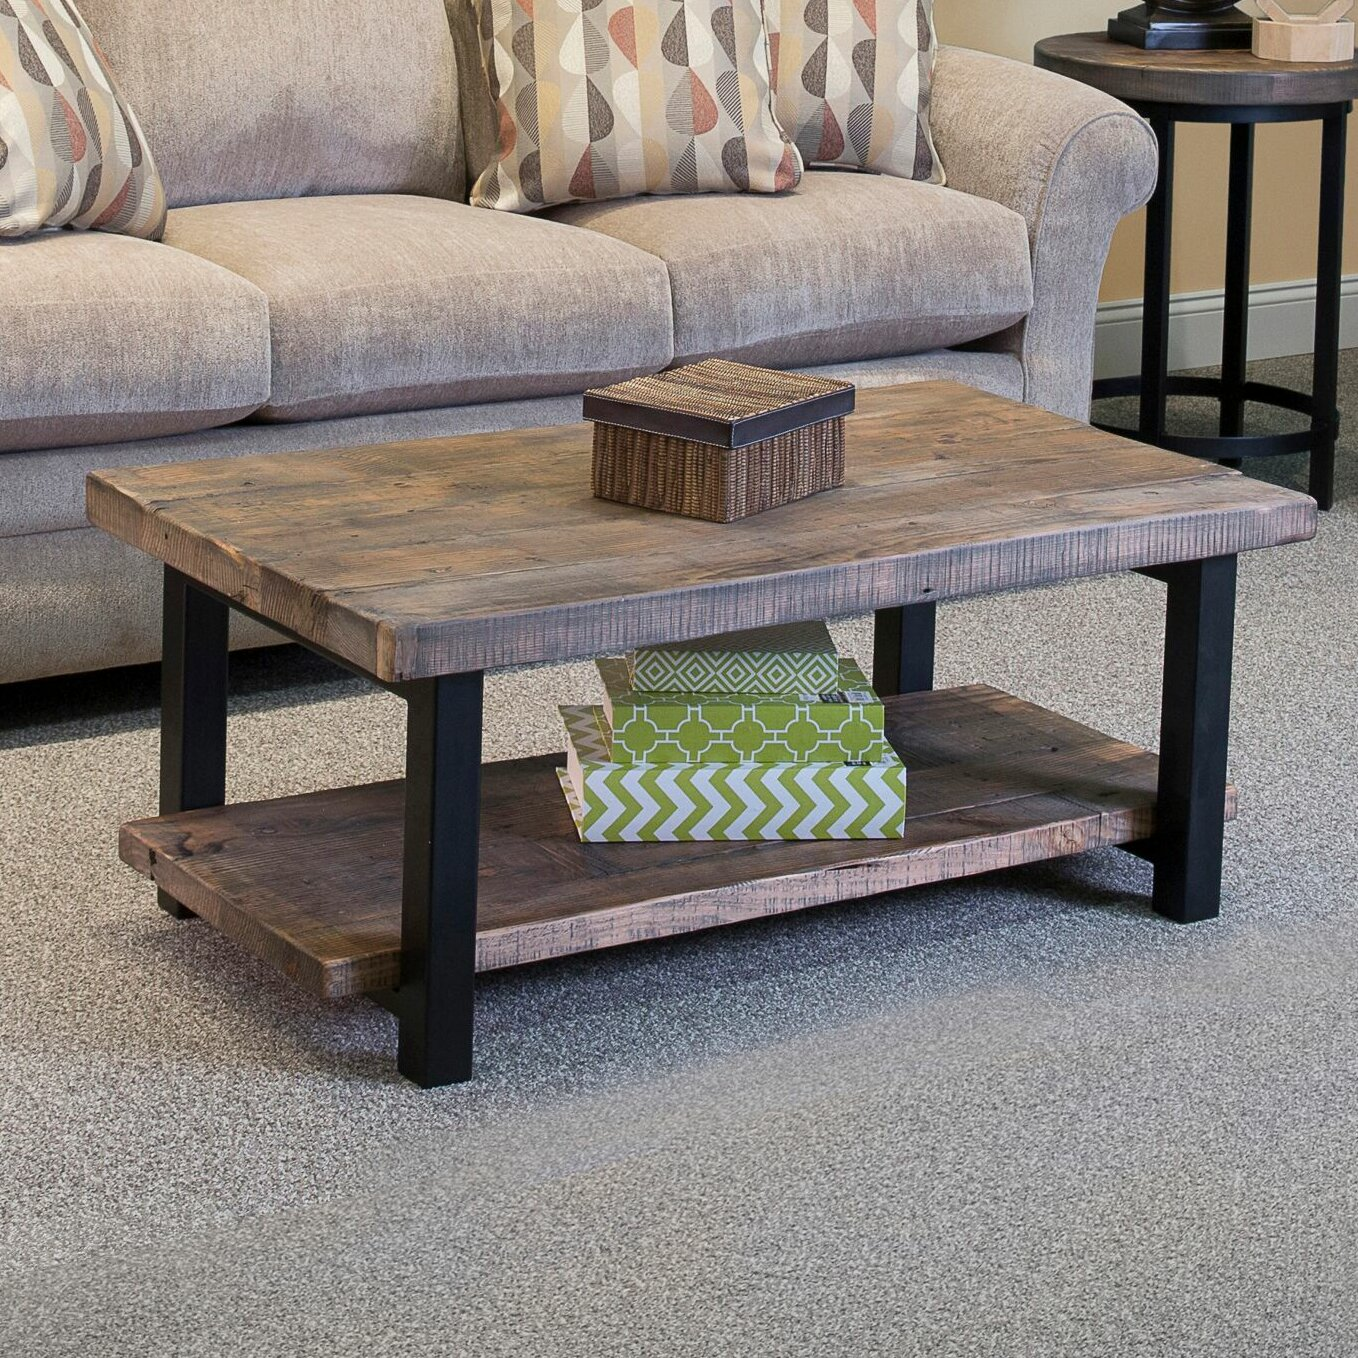 Loon Peak Somers 42quot WoodMetal Coffee Table amp Reviews  : Somers 42 Reclaimed Wood Metal Coffee Table LOON4776 from www.wayfair.com size 1358 x 1358 jpeg 724kB